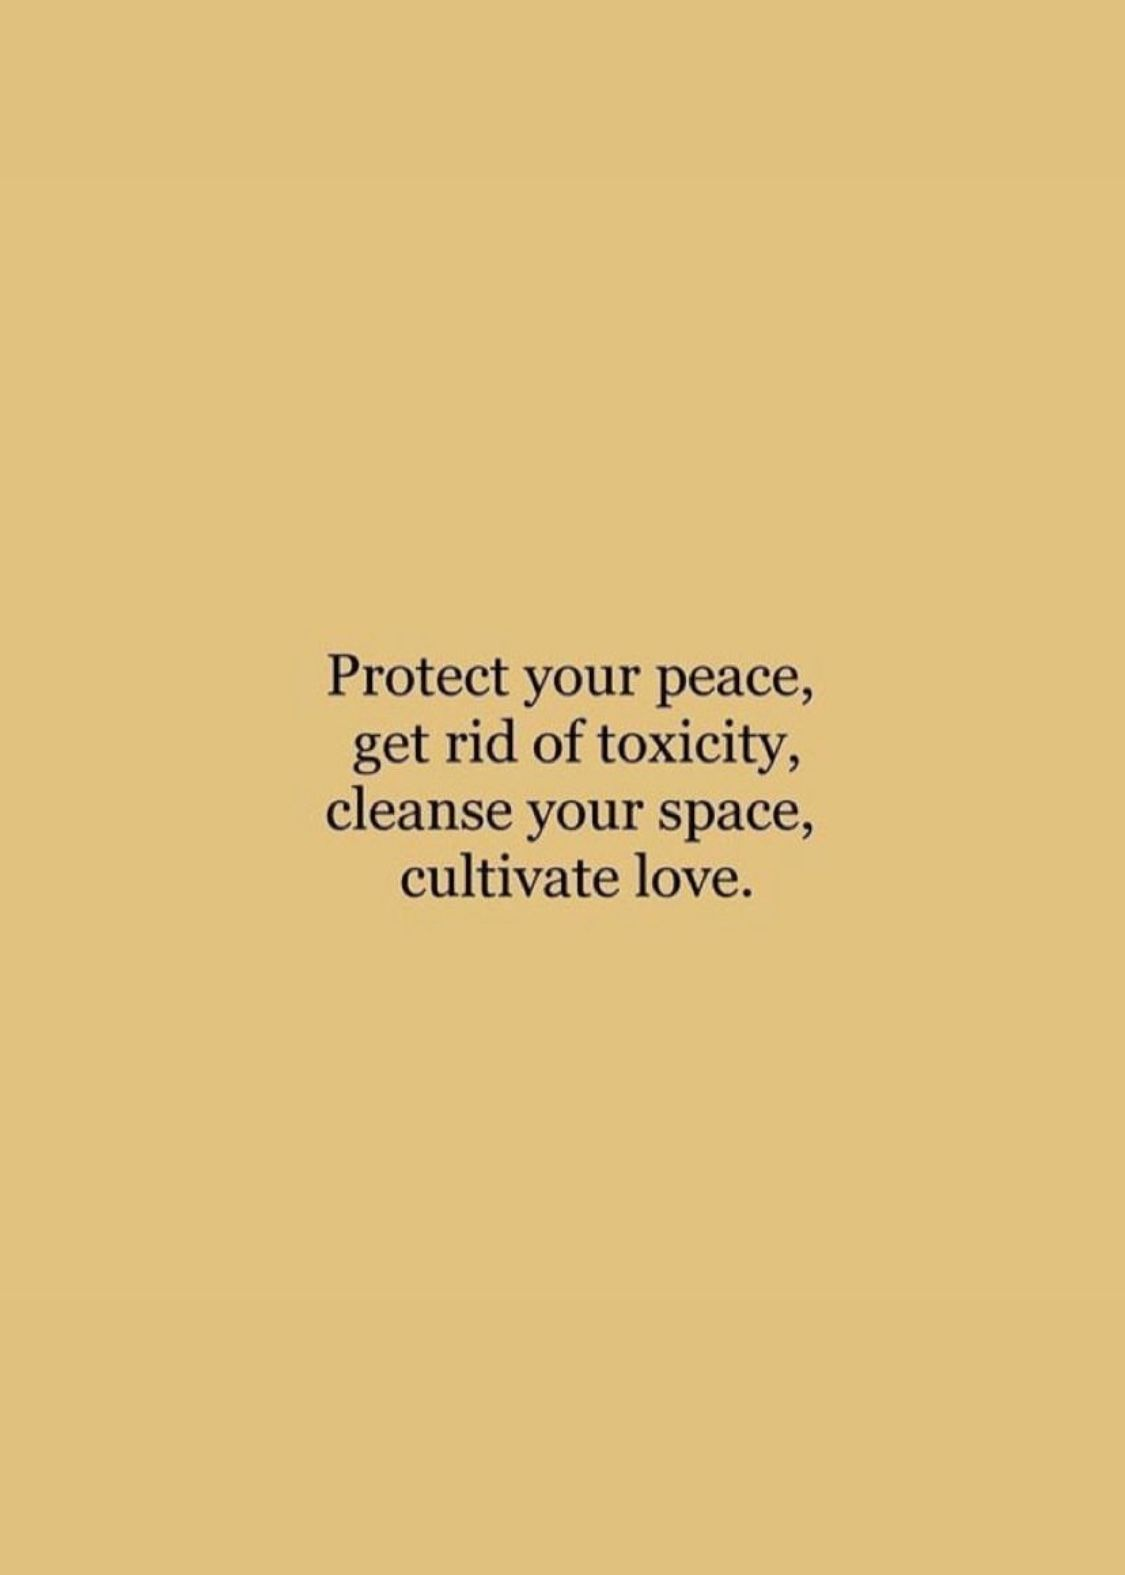 Protect Your Peace Get Rid Of Toxicity Cleanse Your Space